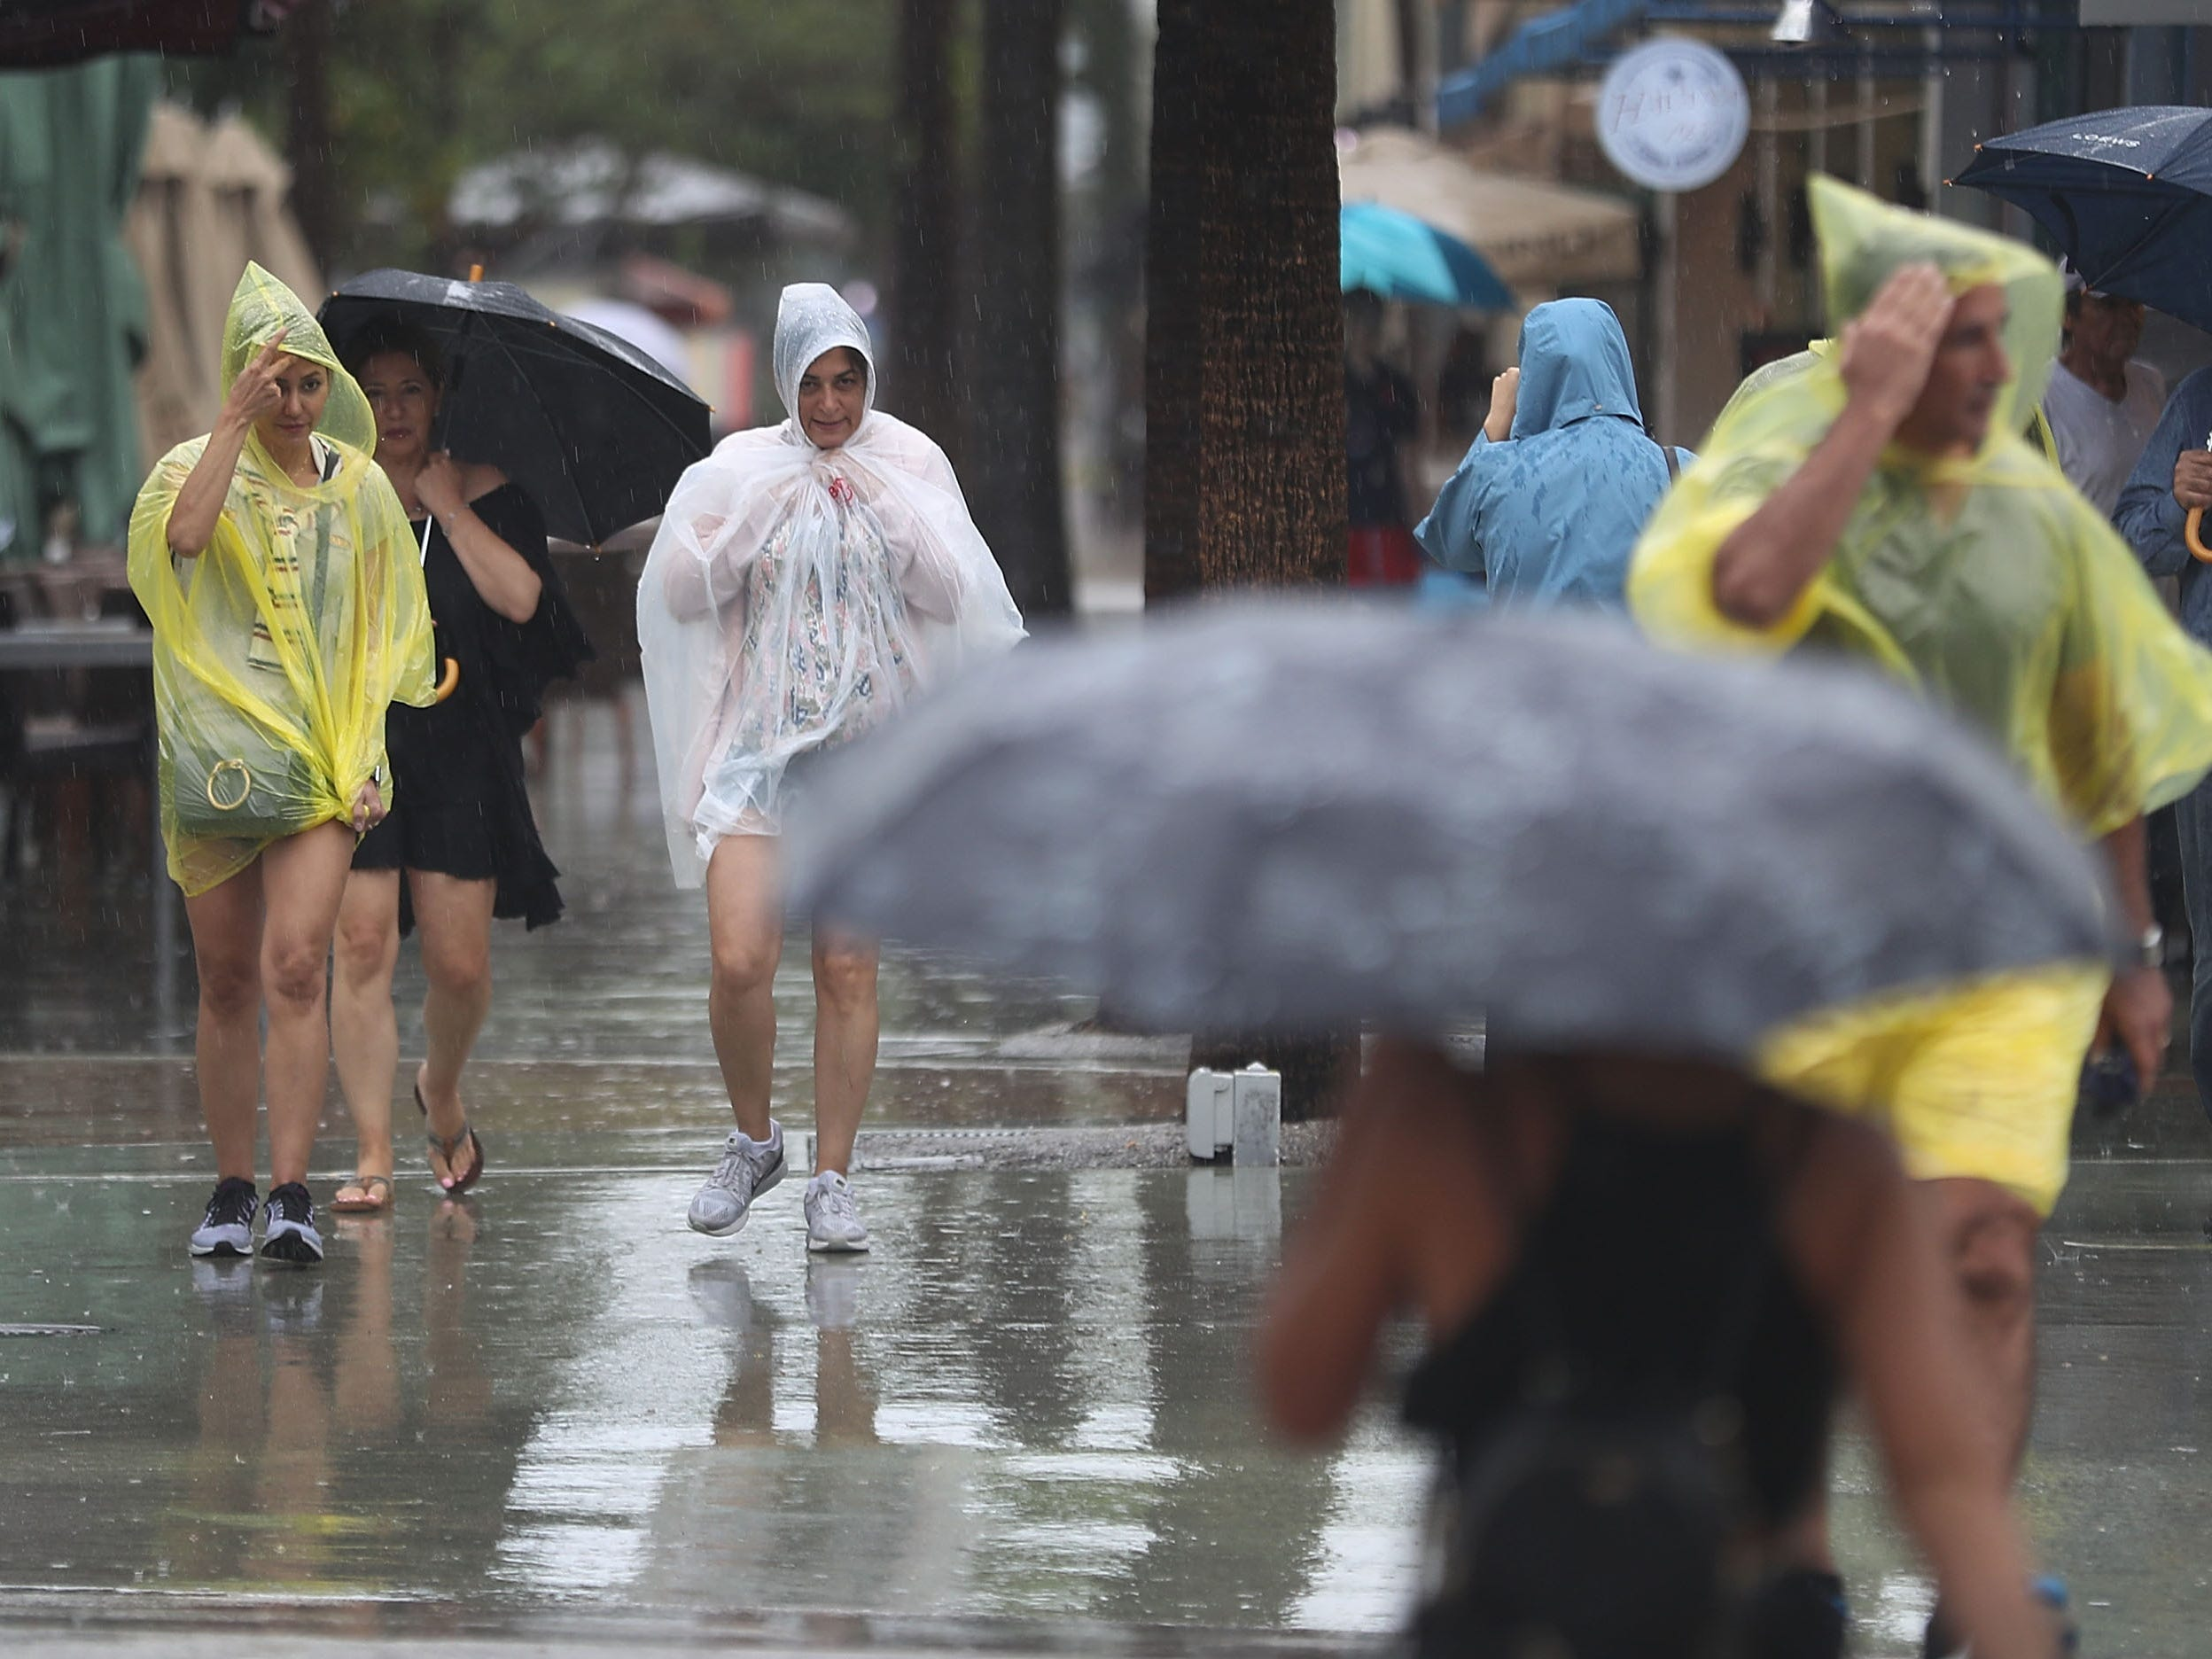 Pedestrians walk through the rain from Tropical Storm Gordon on Sept. 3, 2018, in Miami Beach.